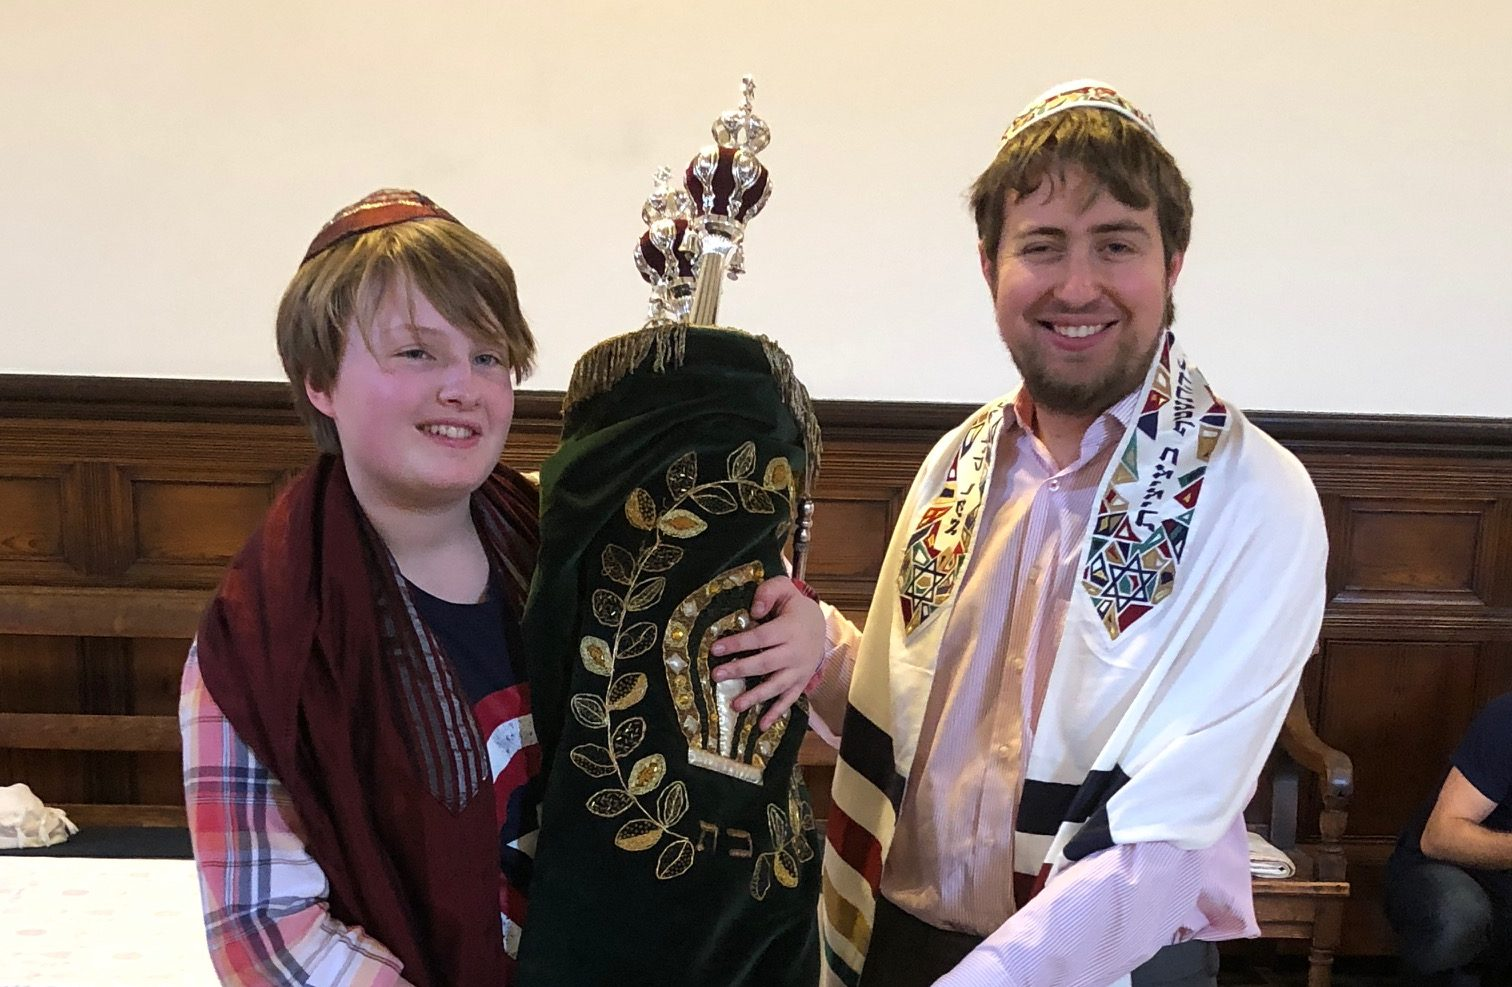 Esther Thorpe, left, identifies as non-binary and had a gender-neutral b'nei mitzvah ceremony with the help of rabbinical student Gabriel Webber.  (Photo/JTA-Courtesy of Miriam Taylor Thorpe)